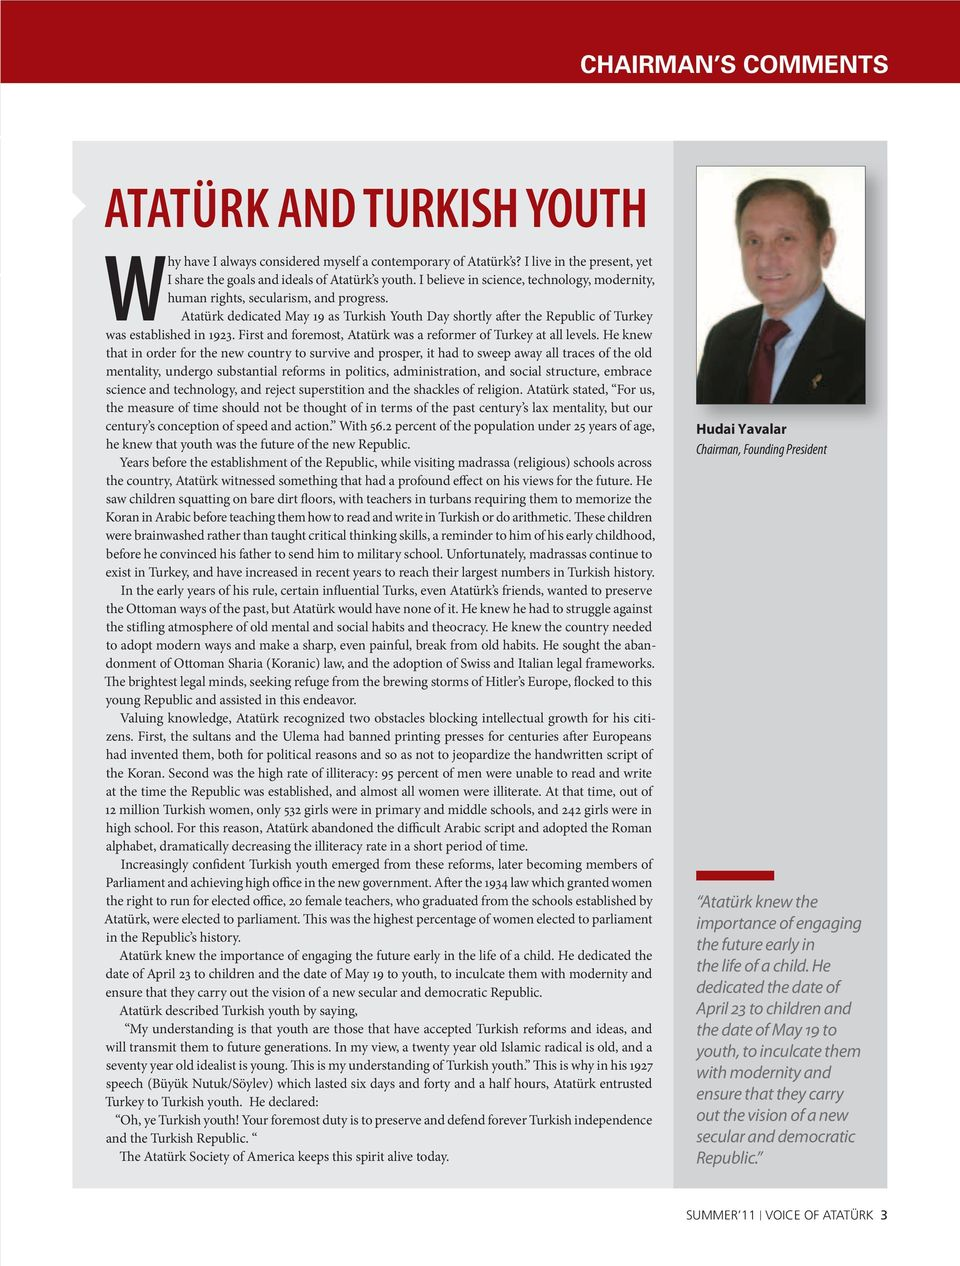 First and foremost, Atatürk was a reformer of Turkey at all levels.